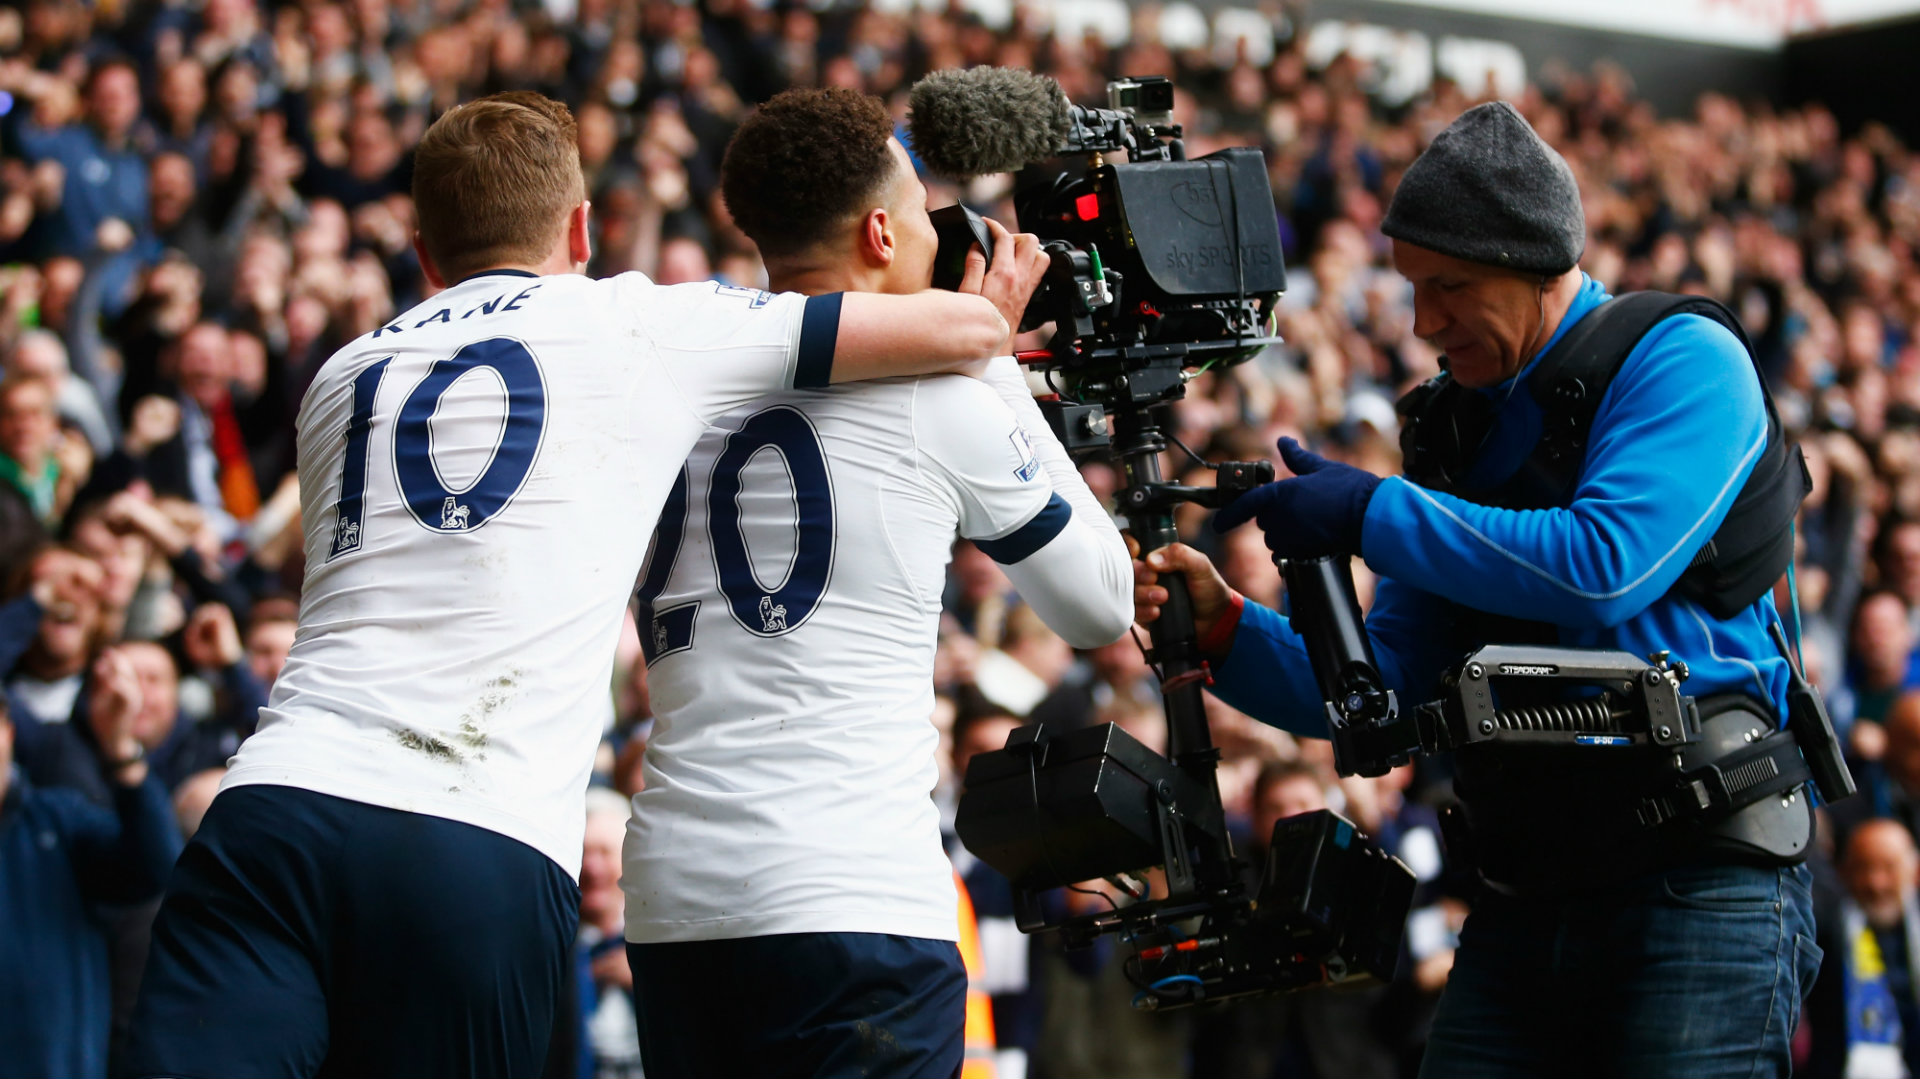 Five of seven Premier League TV rights packages sold for £4.46bn